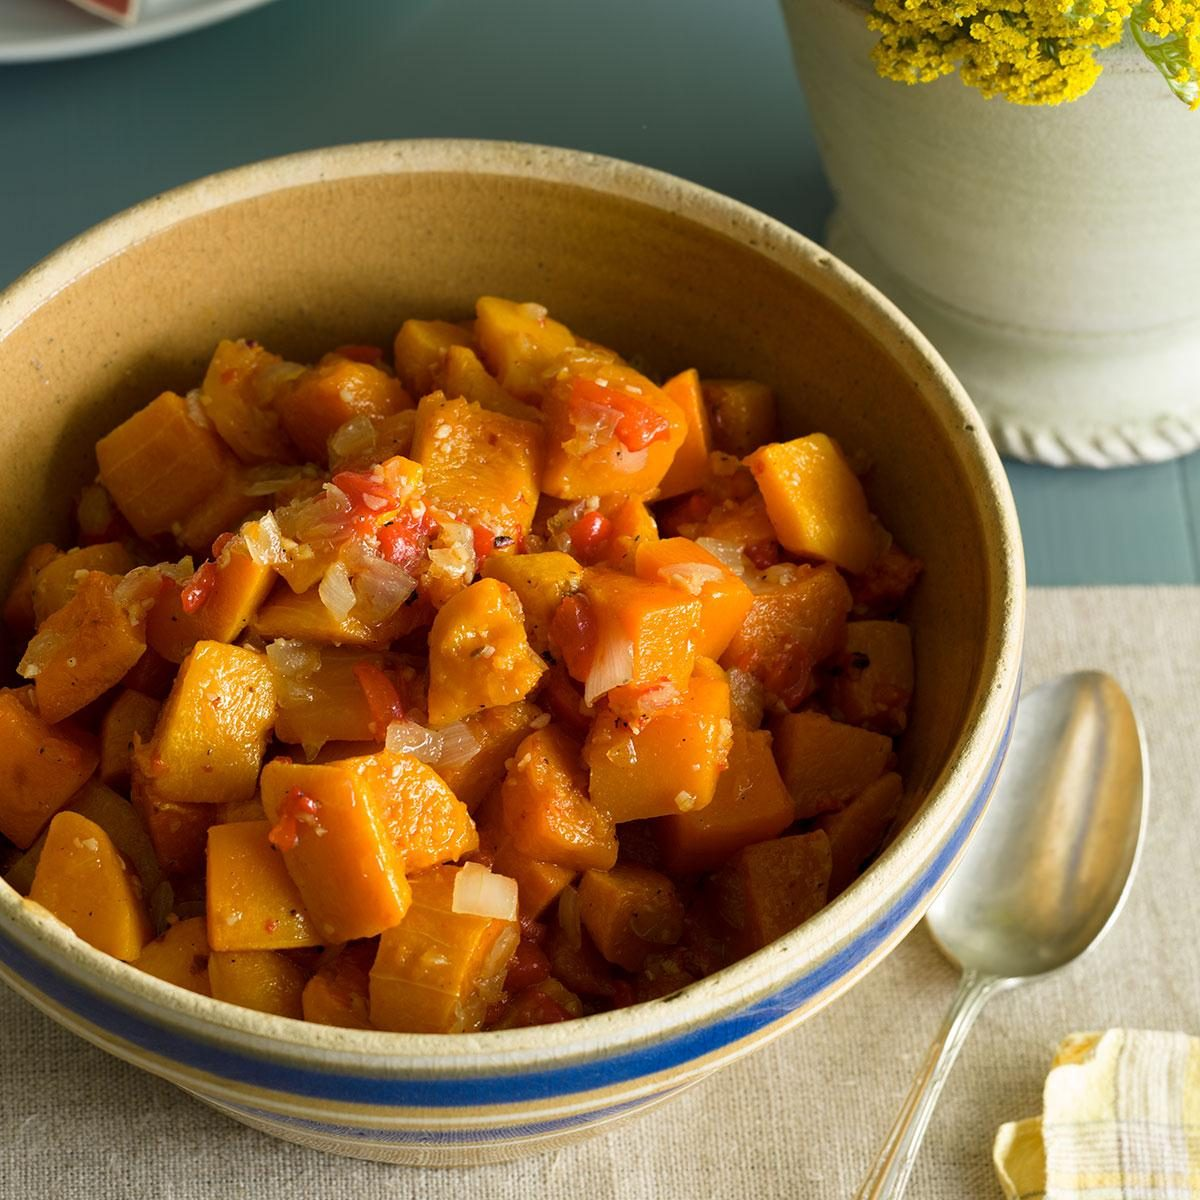 Vermont: Butternut Squash with Maple Syrup